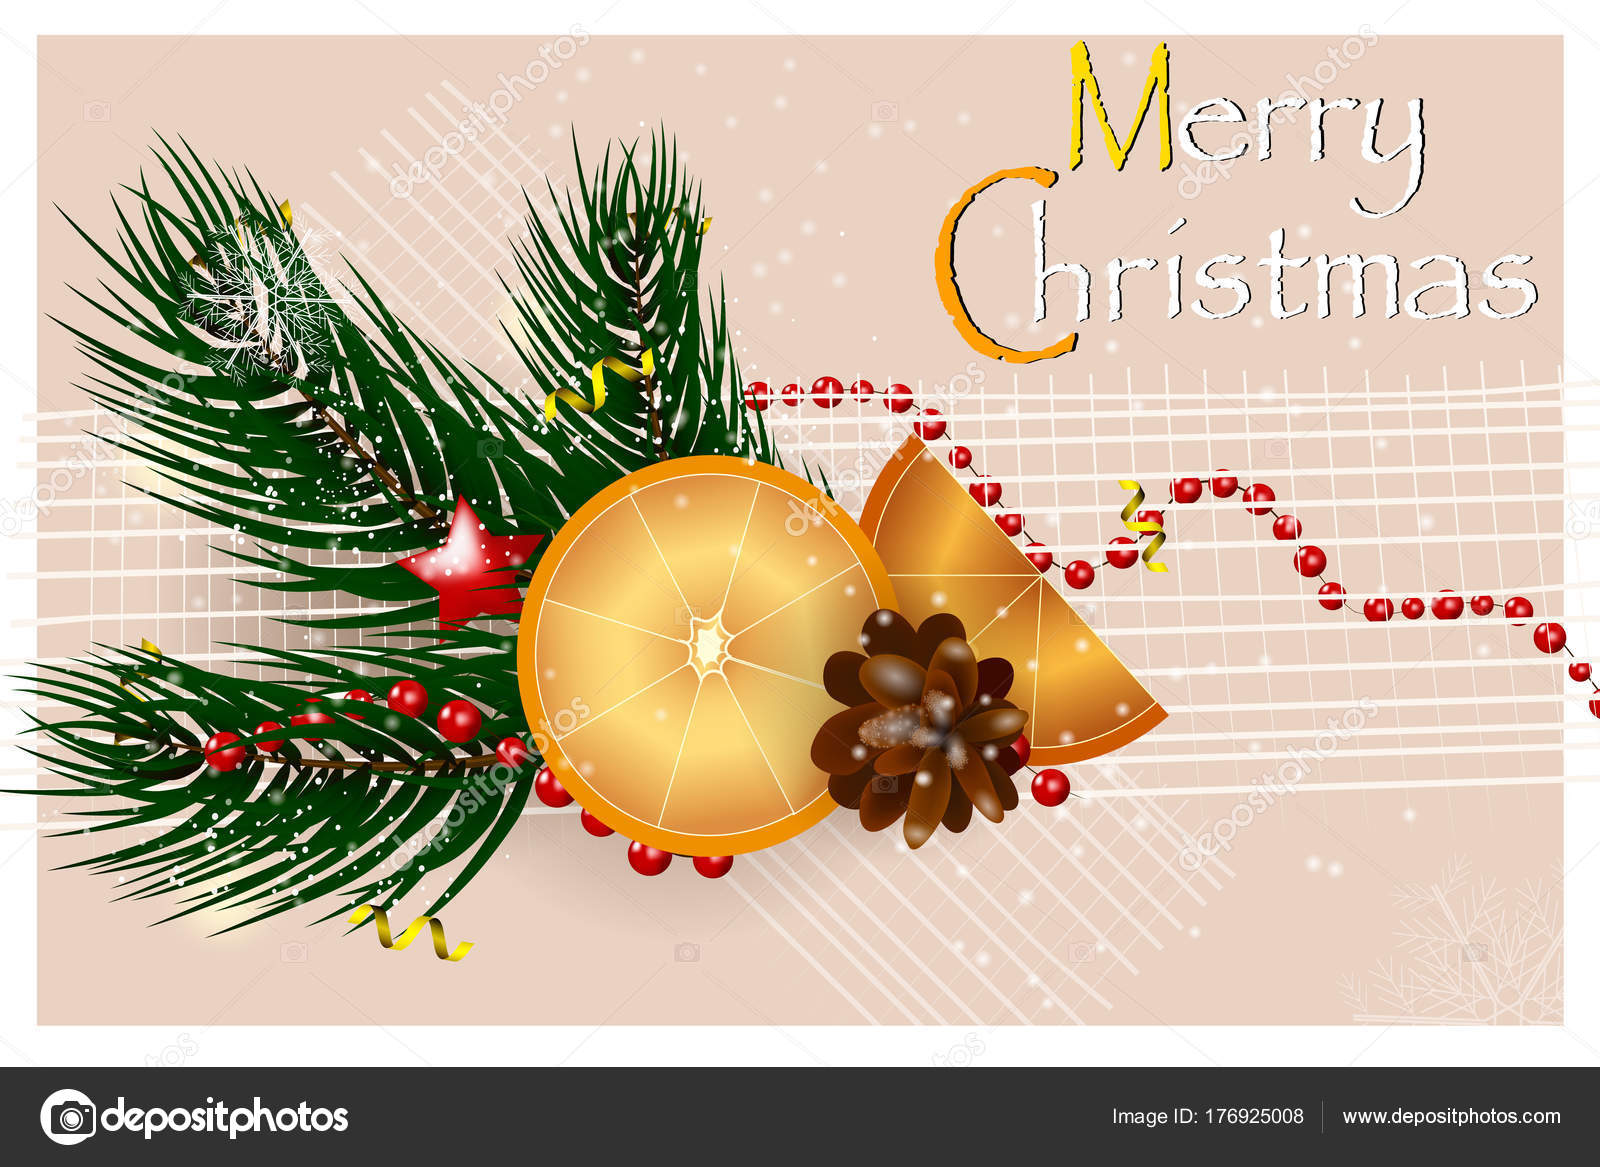 Festive Christmas Design Template With Fir Tree Branch Orange Fir